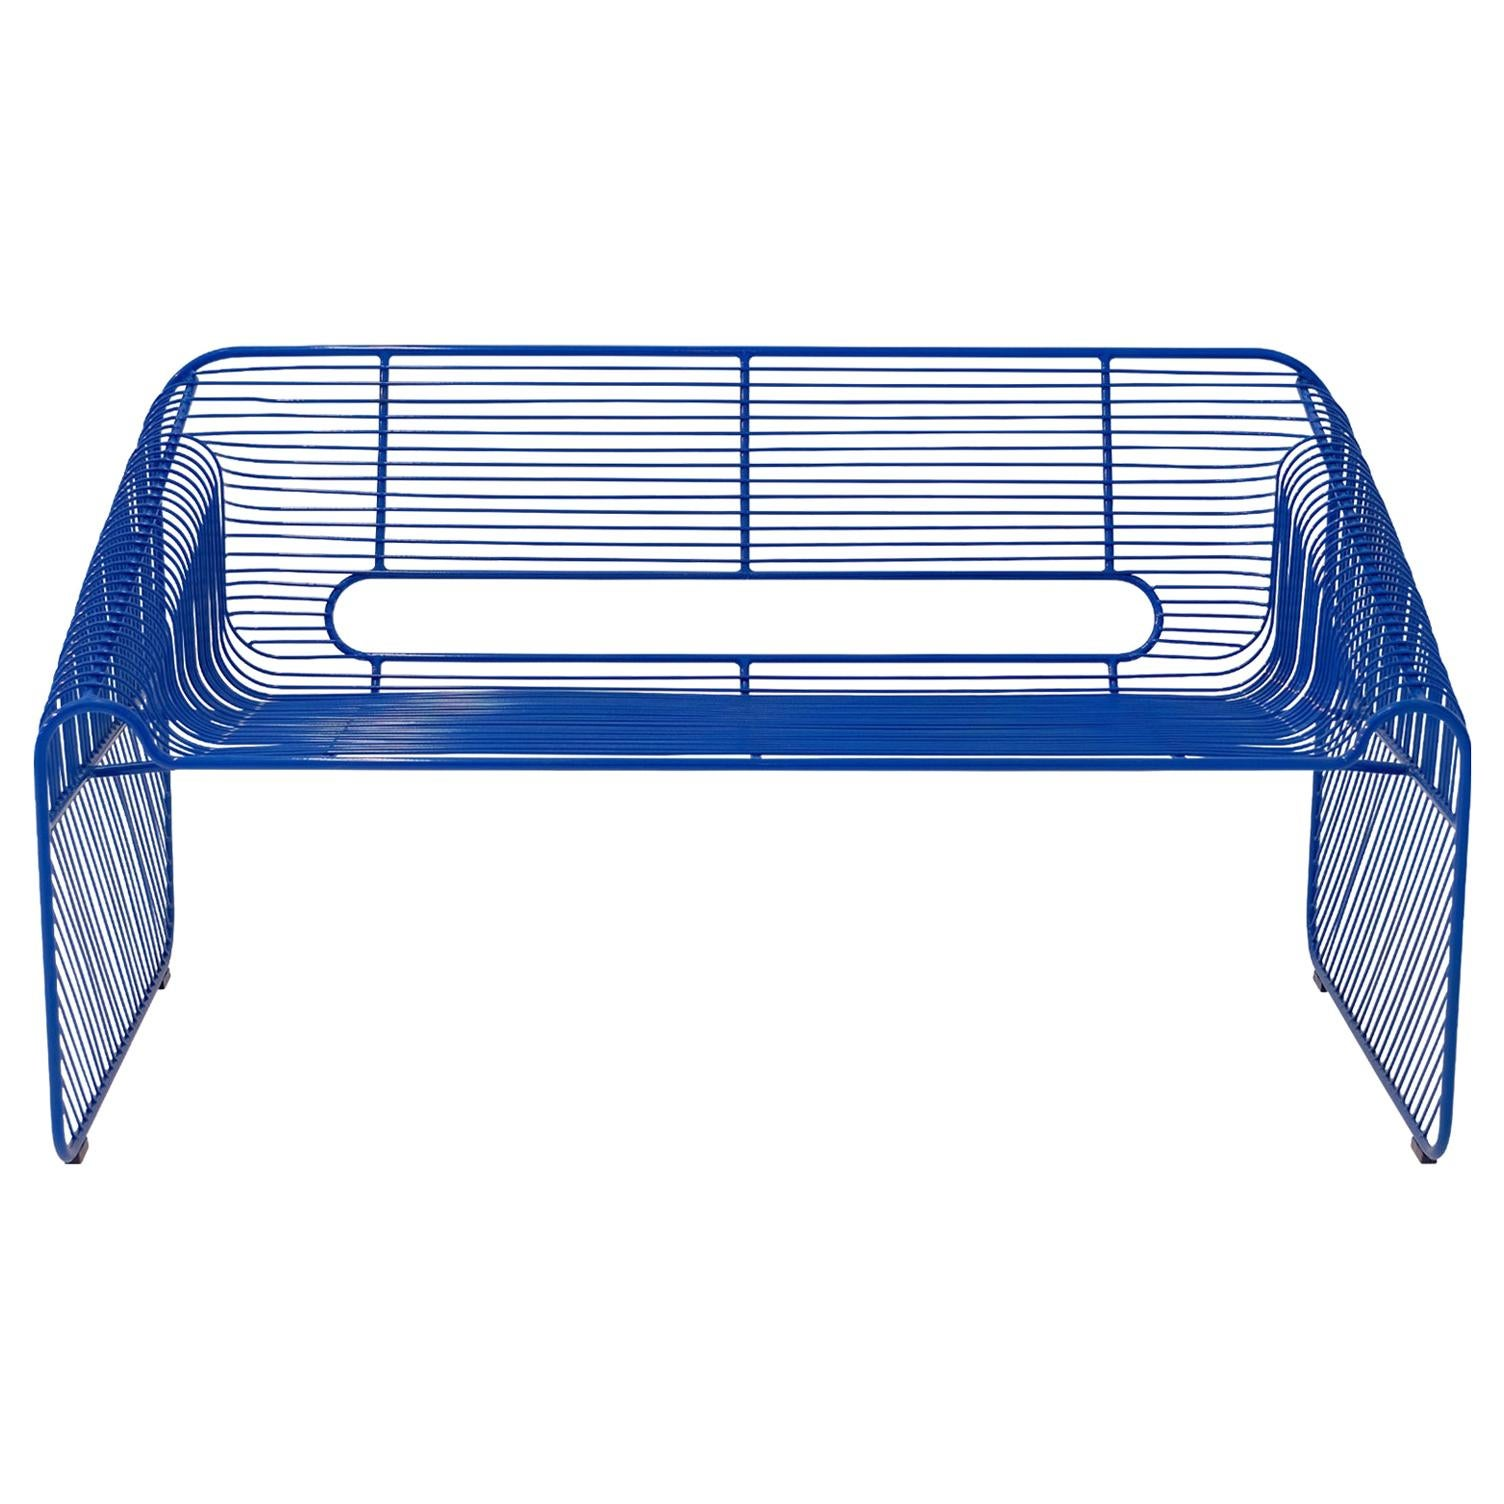 Modern Loveseat, Wire Lounge Chair in Wire by Bend Goods, Electric Blue